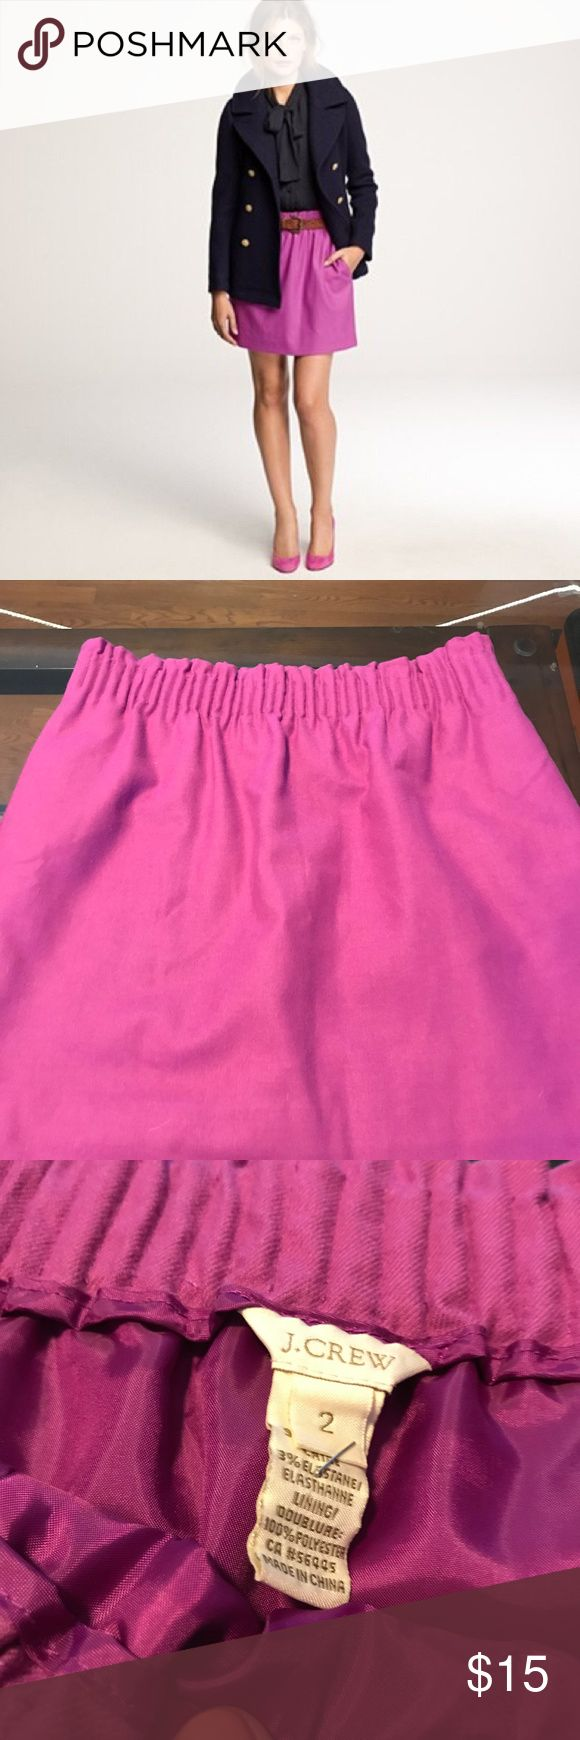 J.Crew City Mini Skirt in Magenta - size 2 Previously worn J. Crew skirt - wool/cotton, lined, with pockets.  Very fun color!  In great condition. J. Crew Skirts Mini